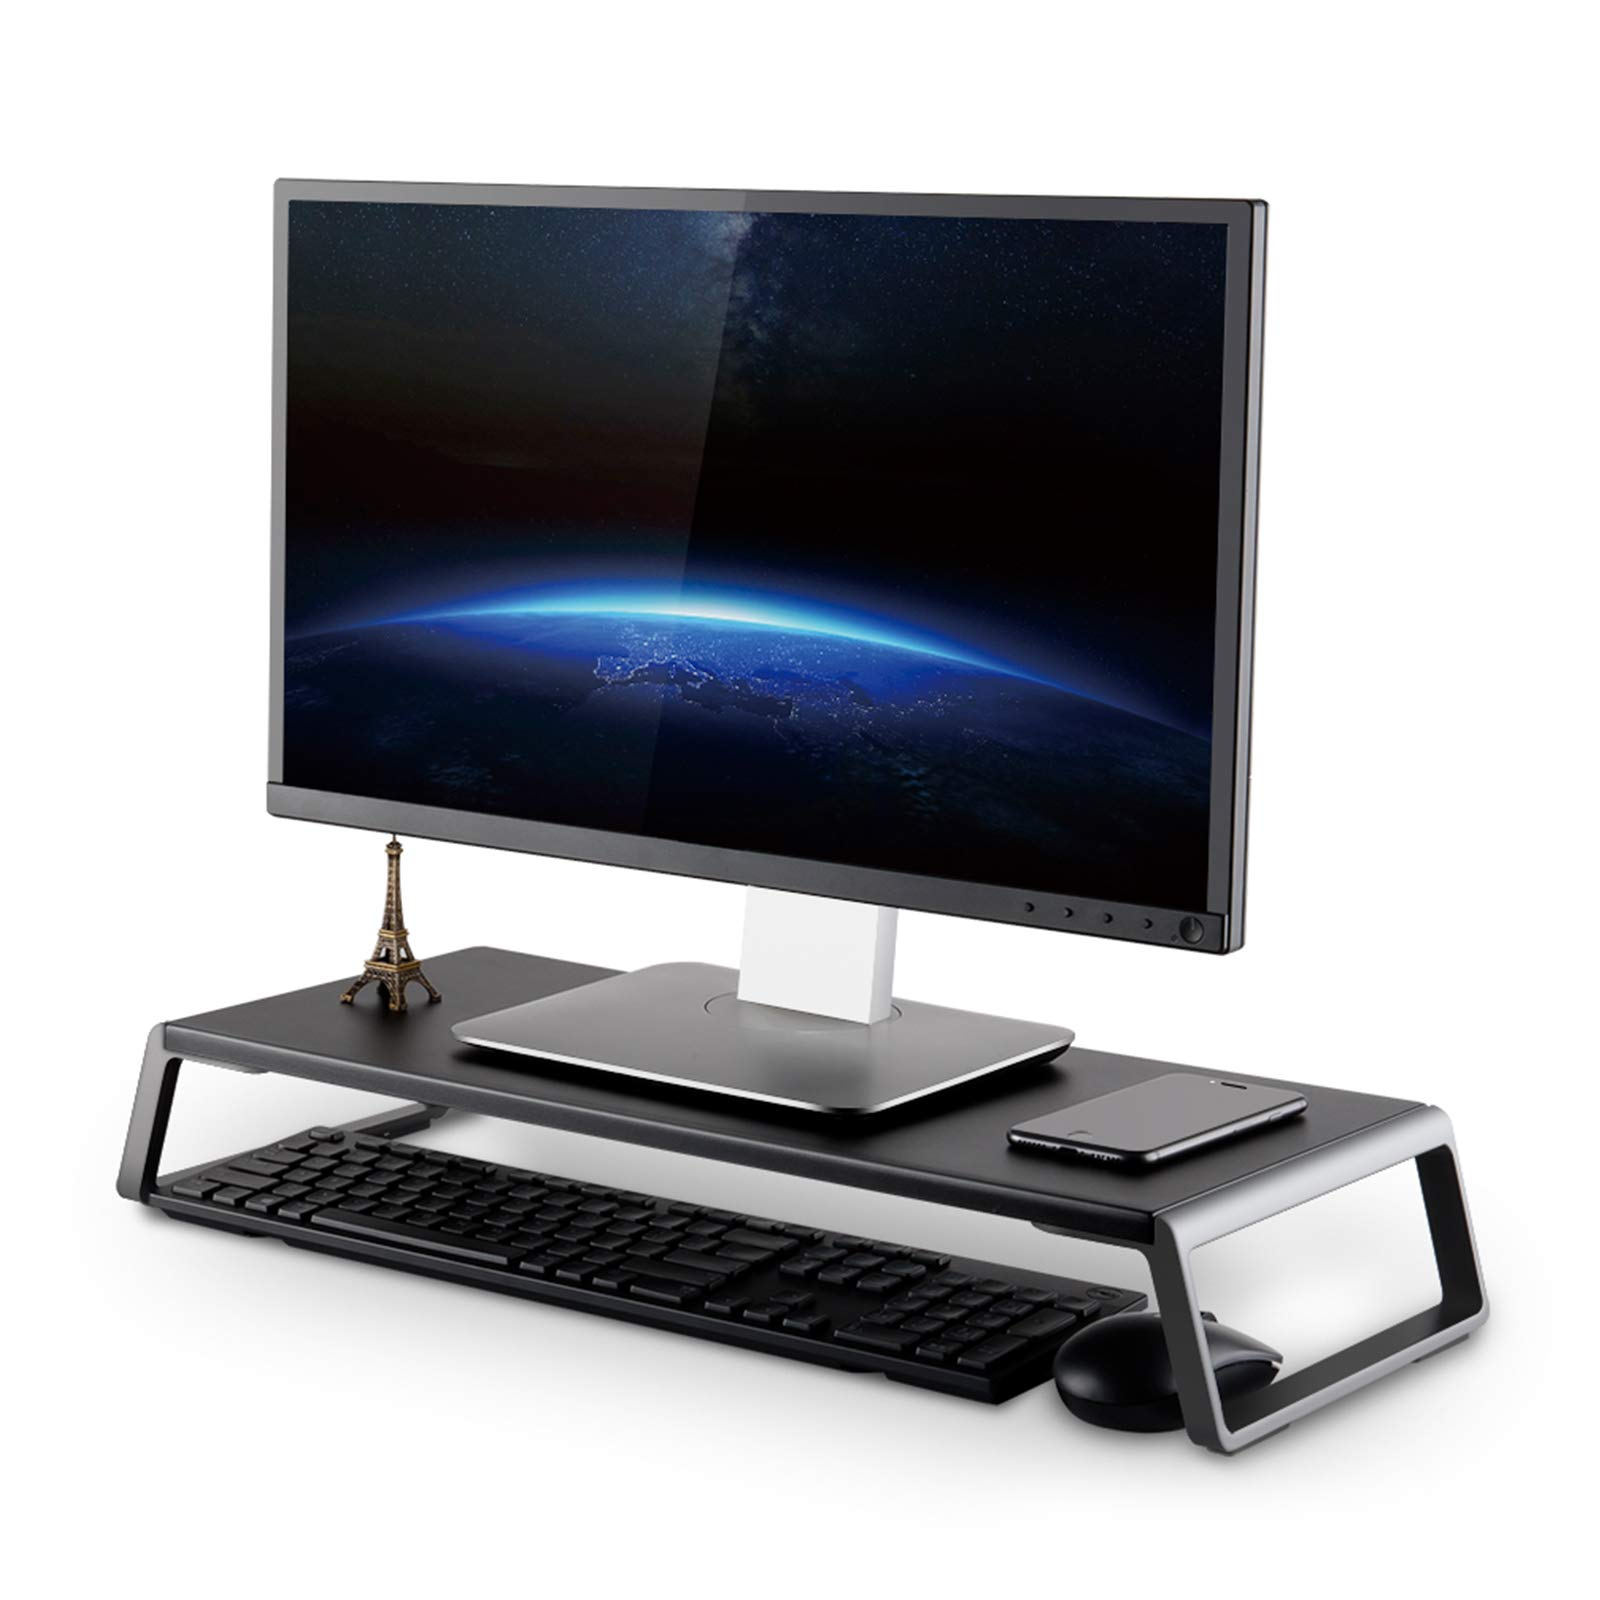 UPERGO Monitor Stand Riser with Metal Feet for Computer Laptop iMac TV LCD Display Printer, Computer Monitor Riser with Desk Tabletop Organizer 20x9.45inch Sturdy Platform Save Space,Black(ID-20B)